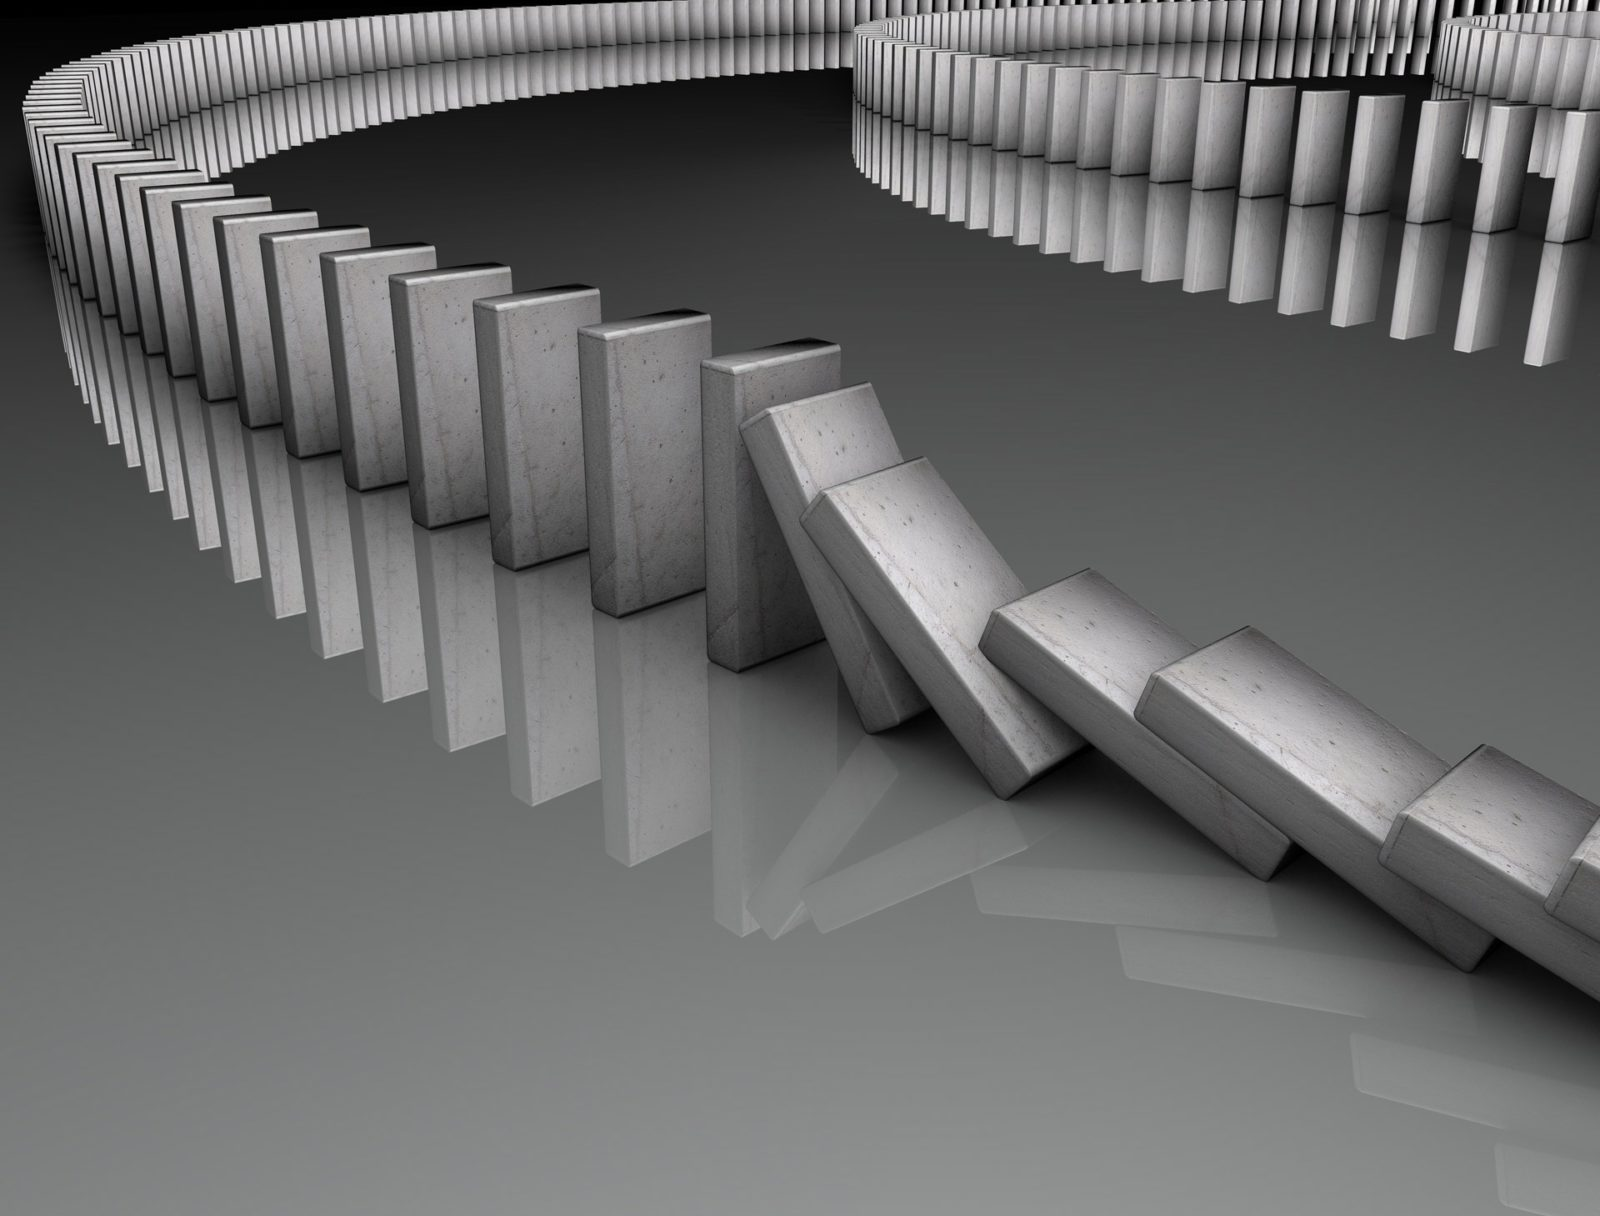 Grey Dominoes, Symbolic of an influencer